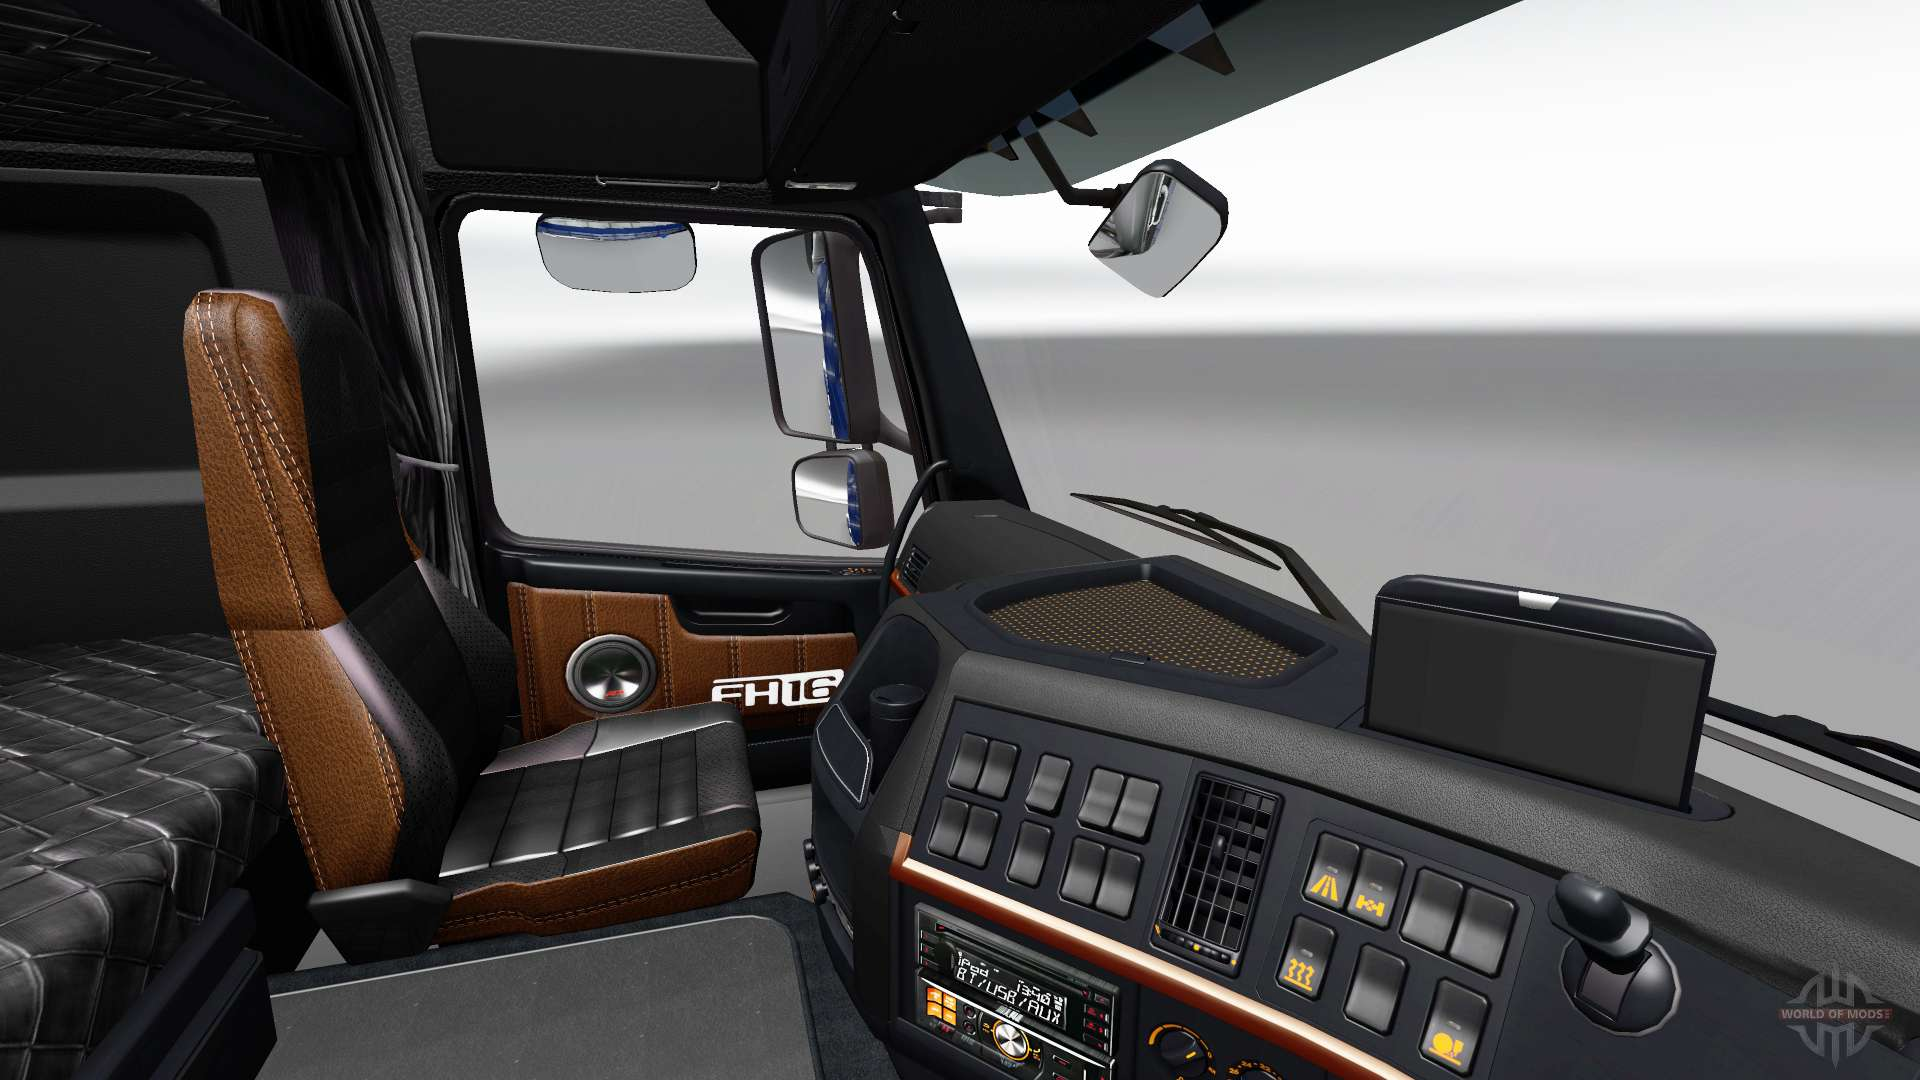 Black and brown interior of the volvo for euro truck simulator 2